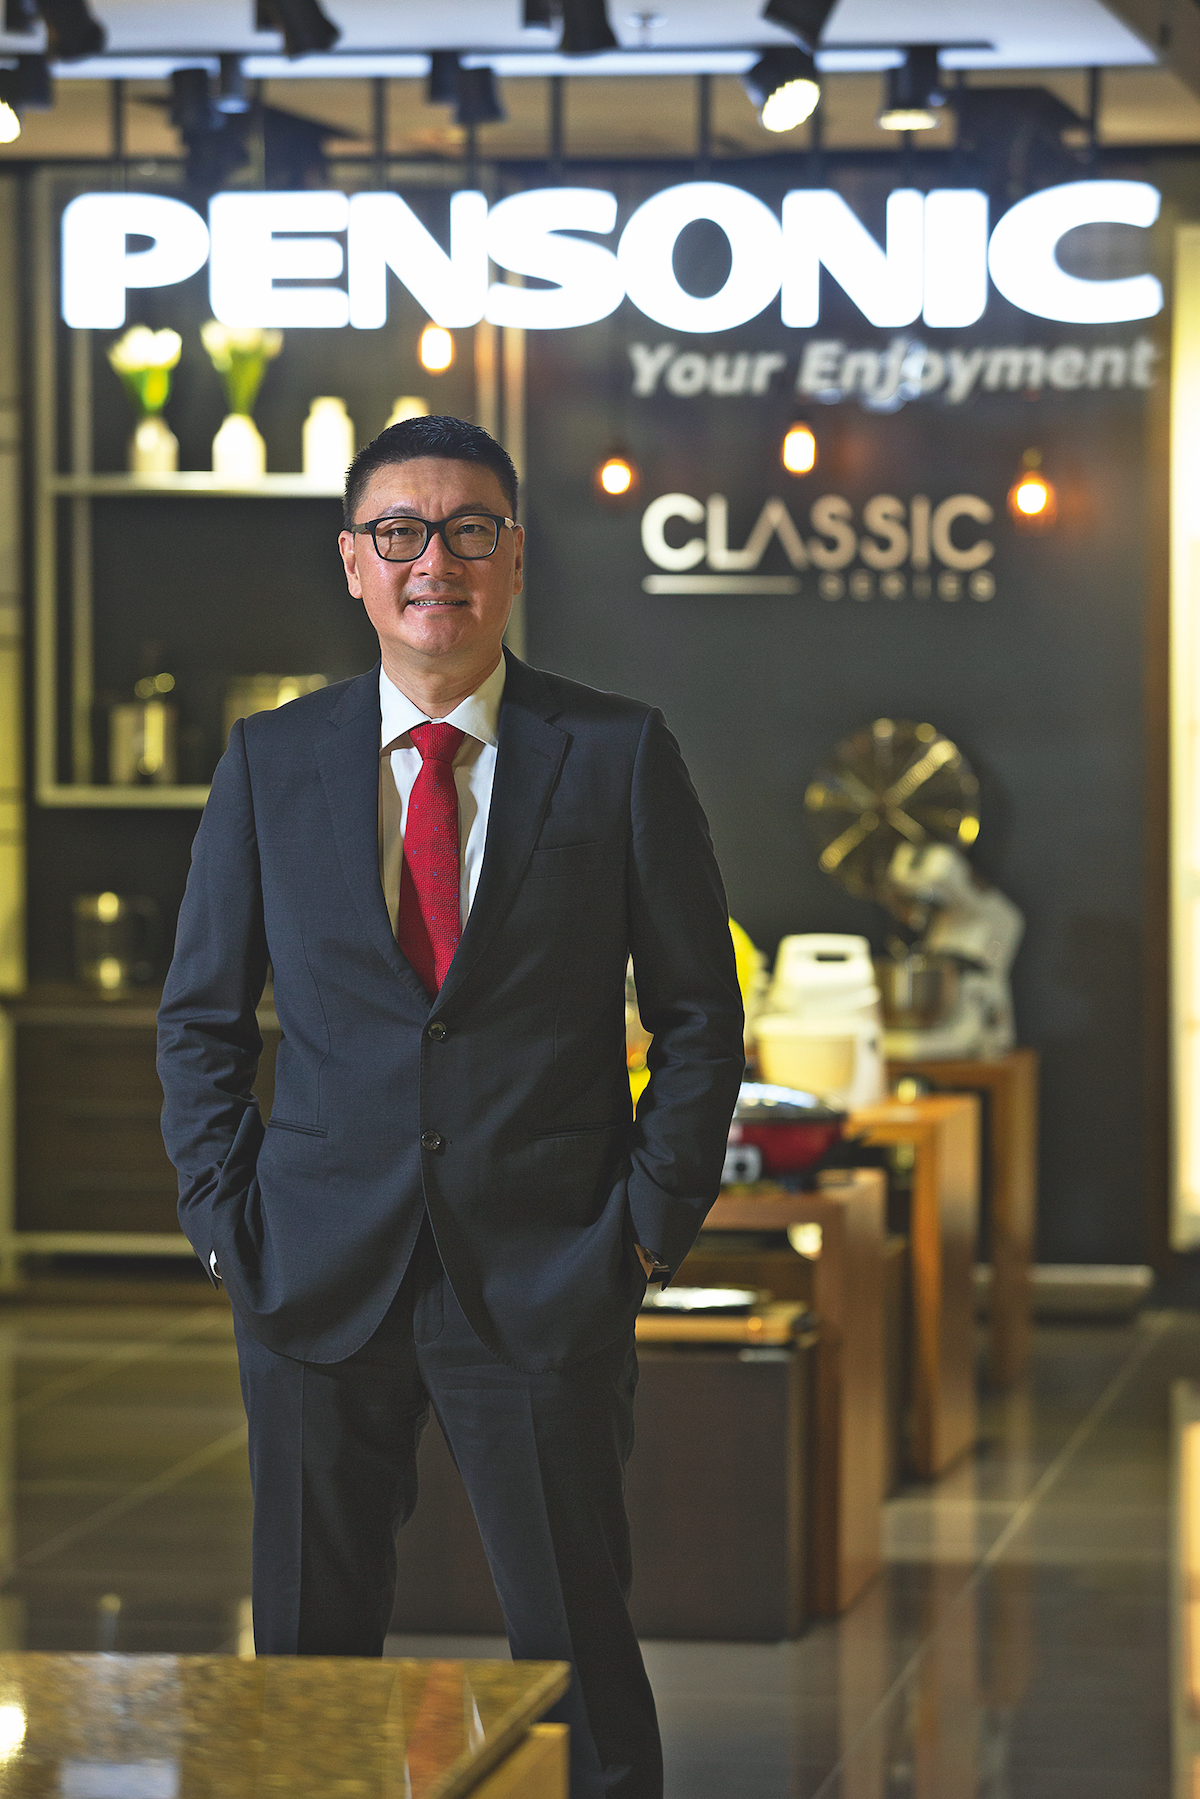 Vincent Chew, Managing Director of Pensonic Holdings BHD